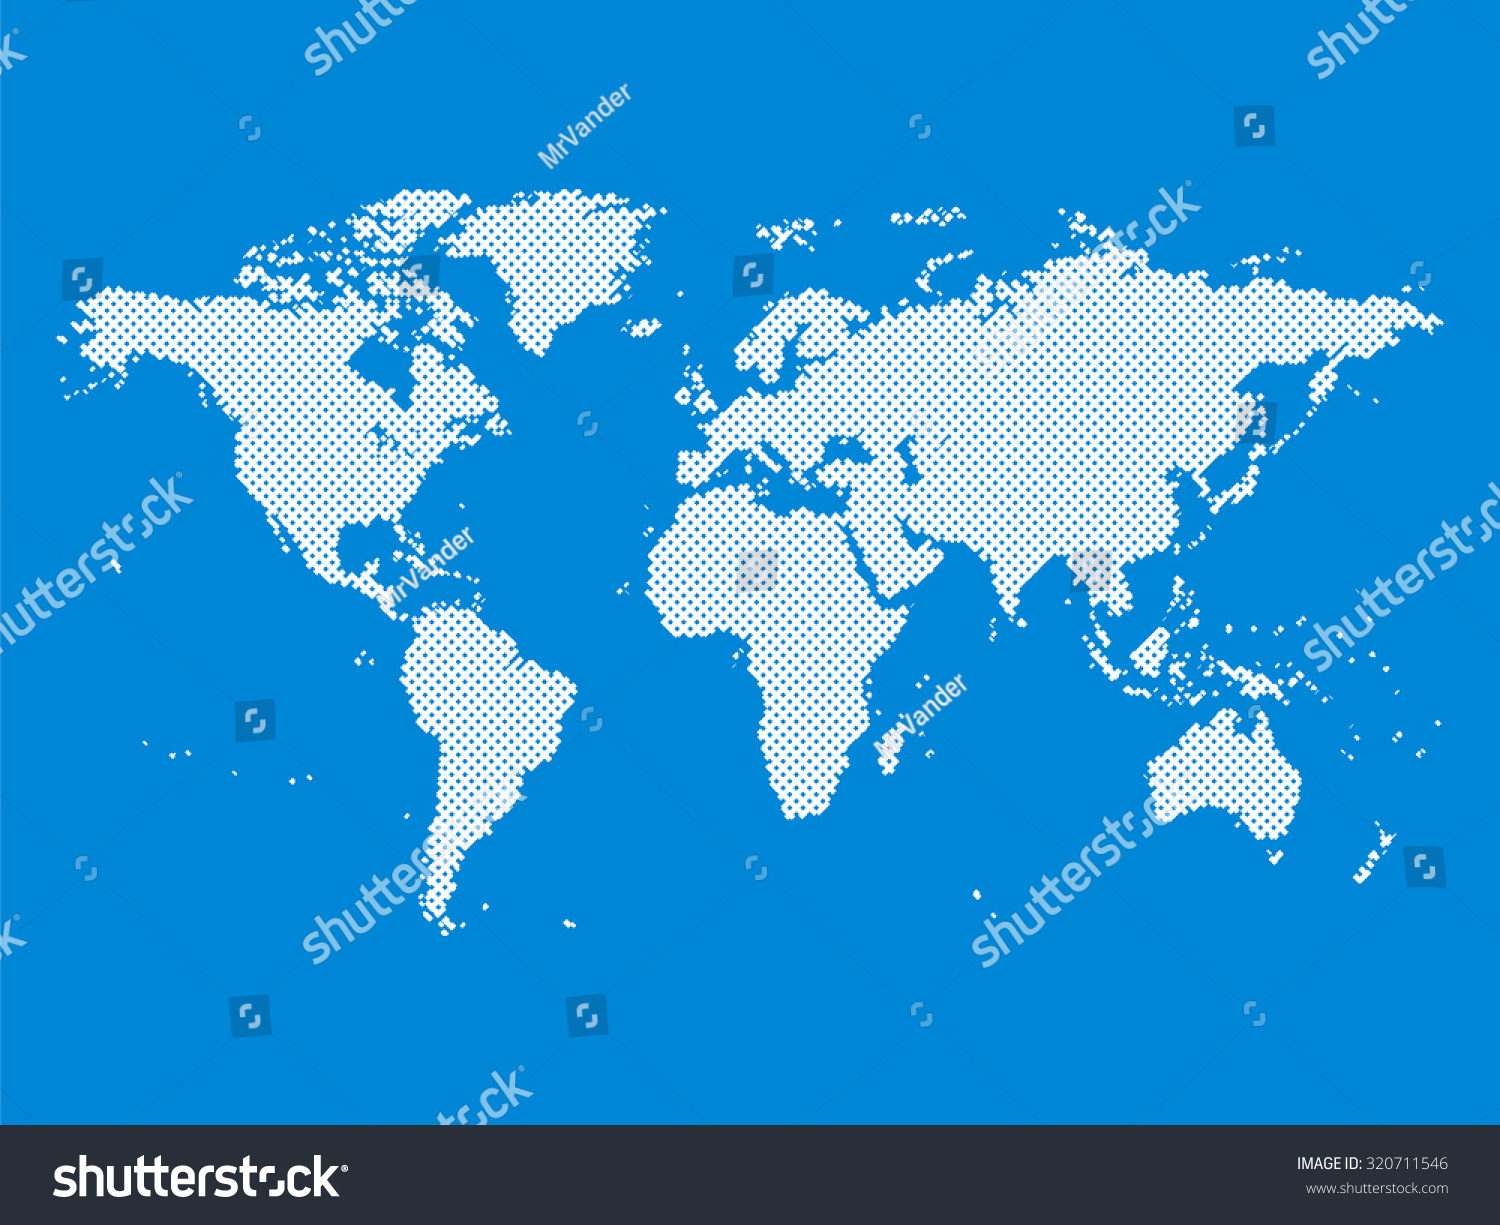 World map vector world map template stock vector 320711546 world map vector world map template world map flat world map card gumiabroncs Images